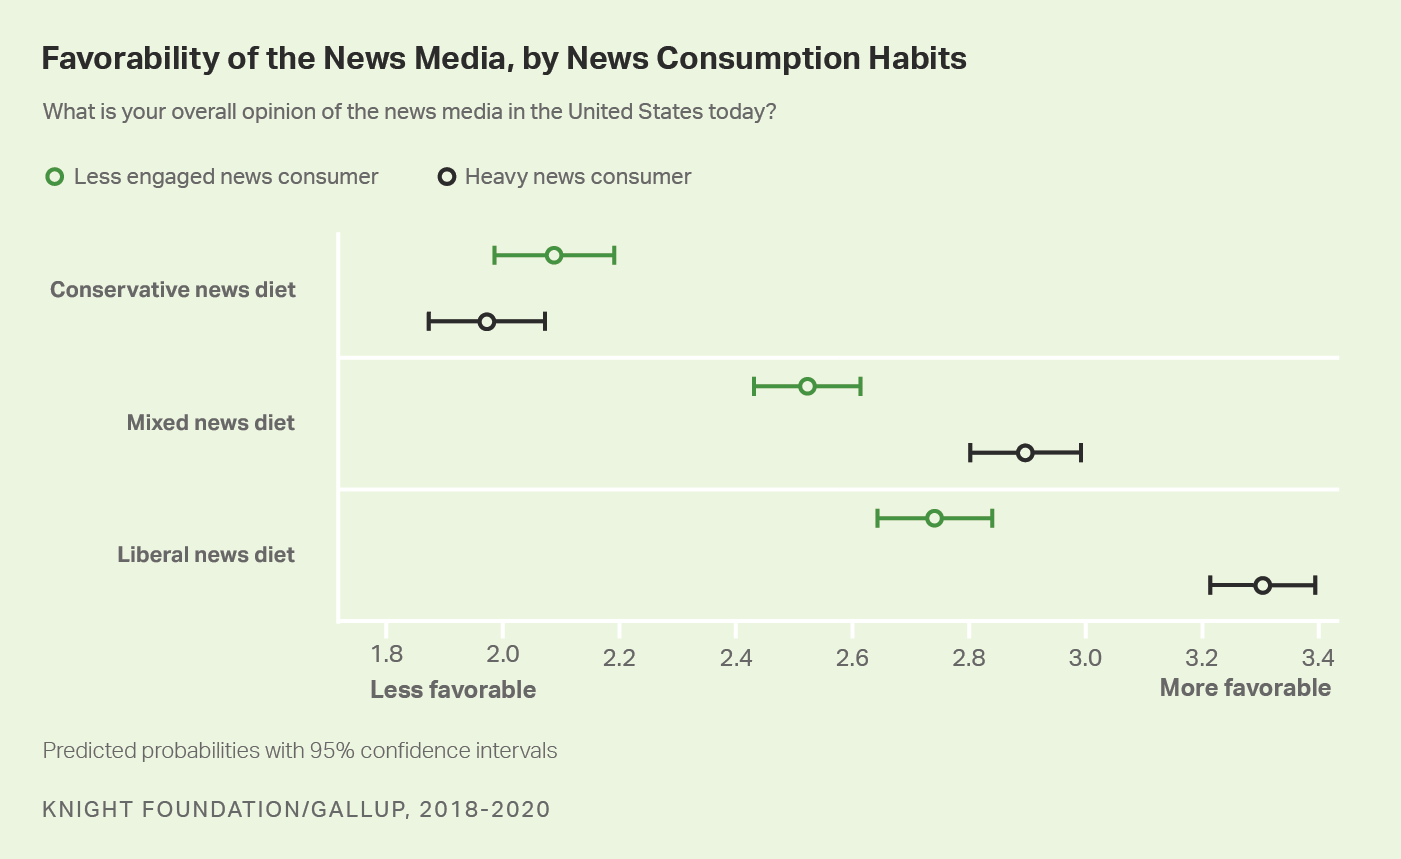 Scatterplot graph. Americans' opinions of the news media, by news diet and level of news consumption.